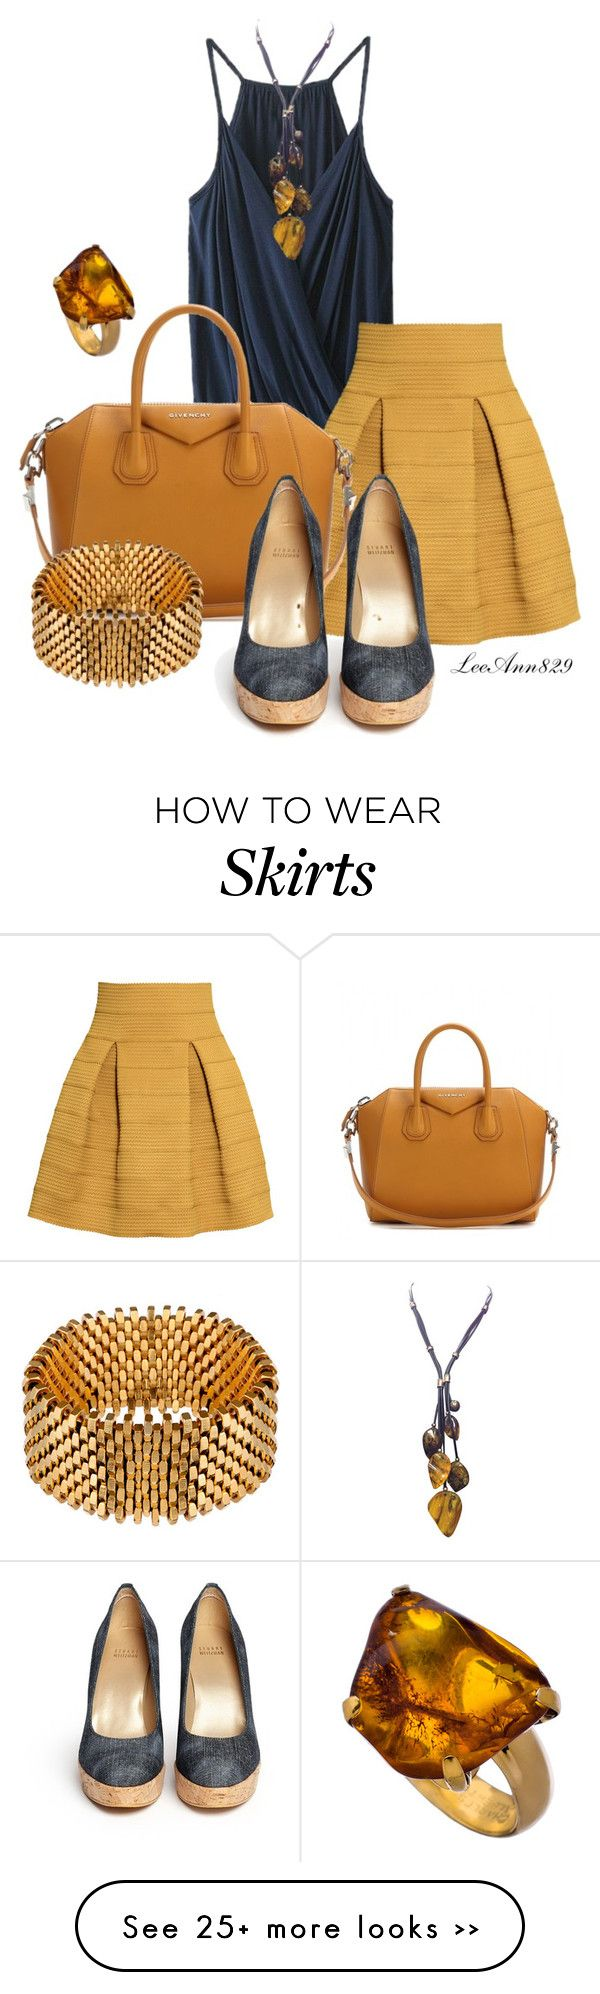 """""""navy contest"""" by leeann829 on Polyvore"""